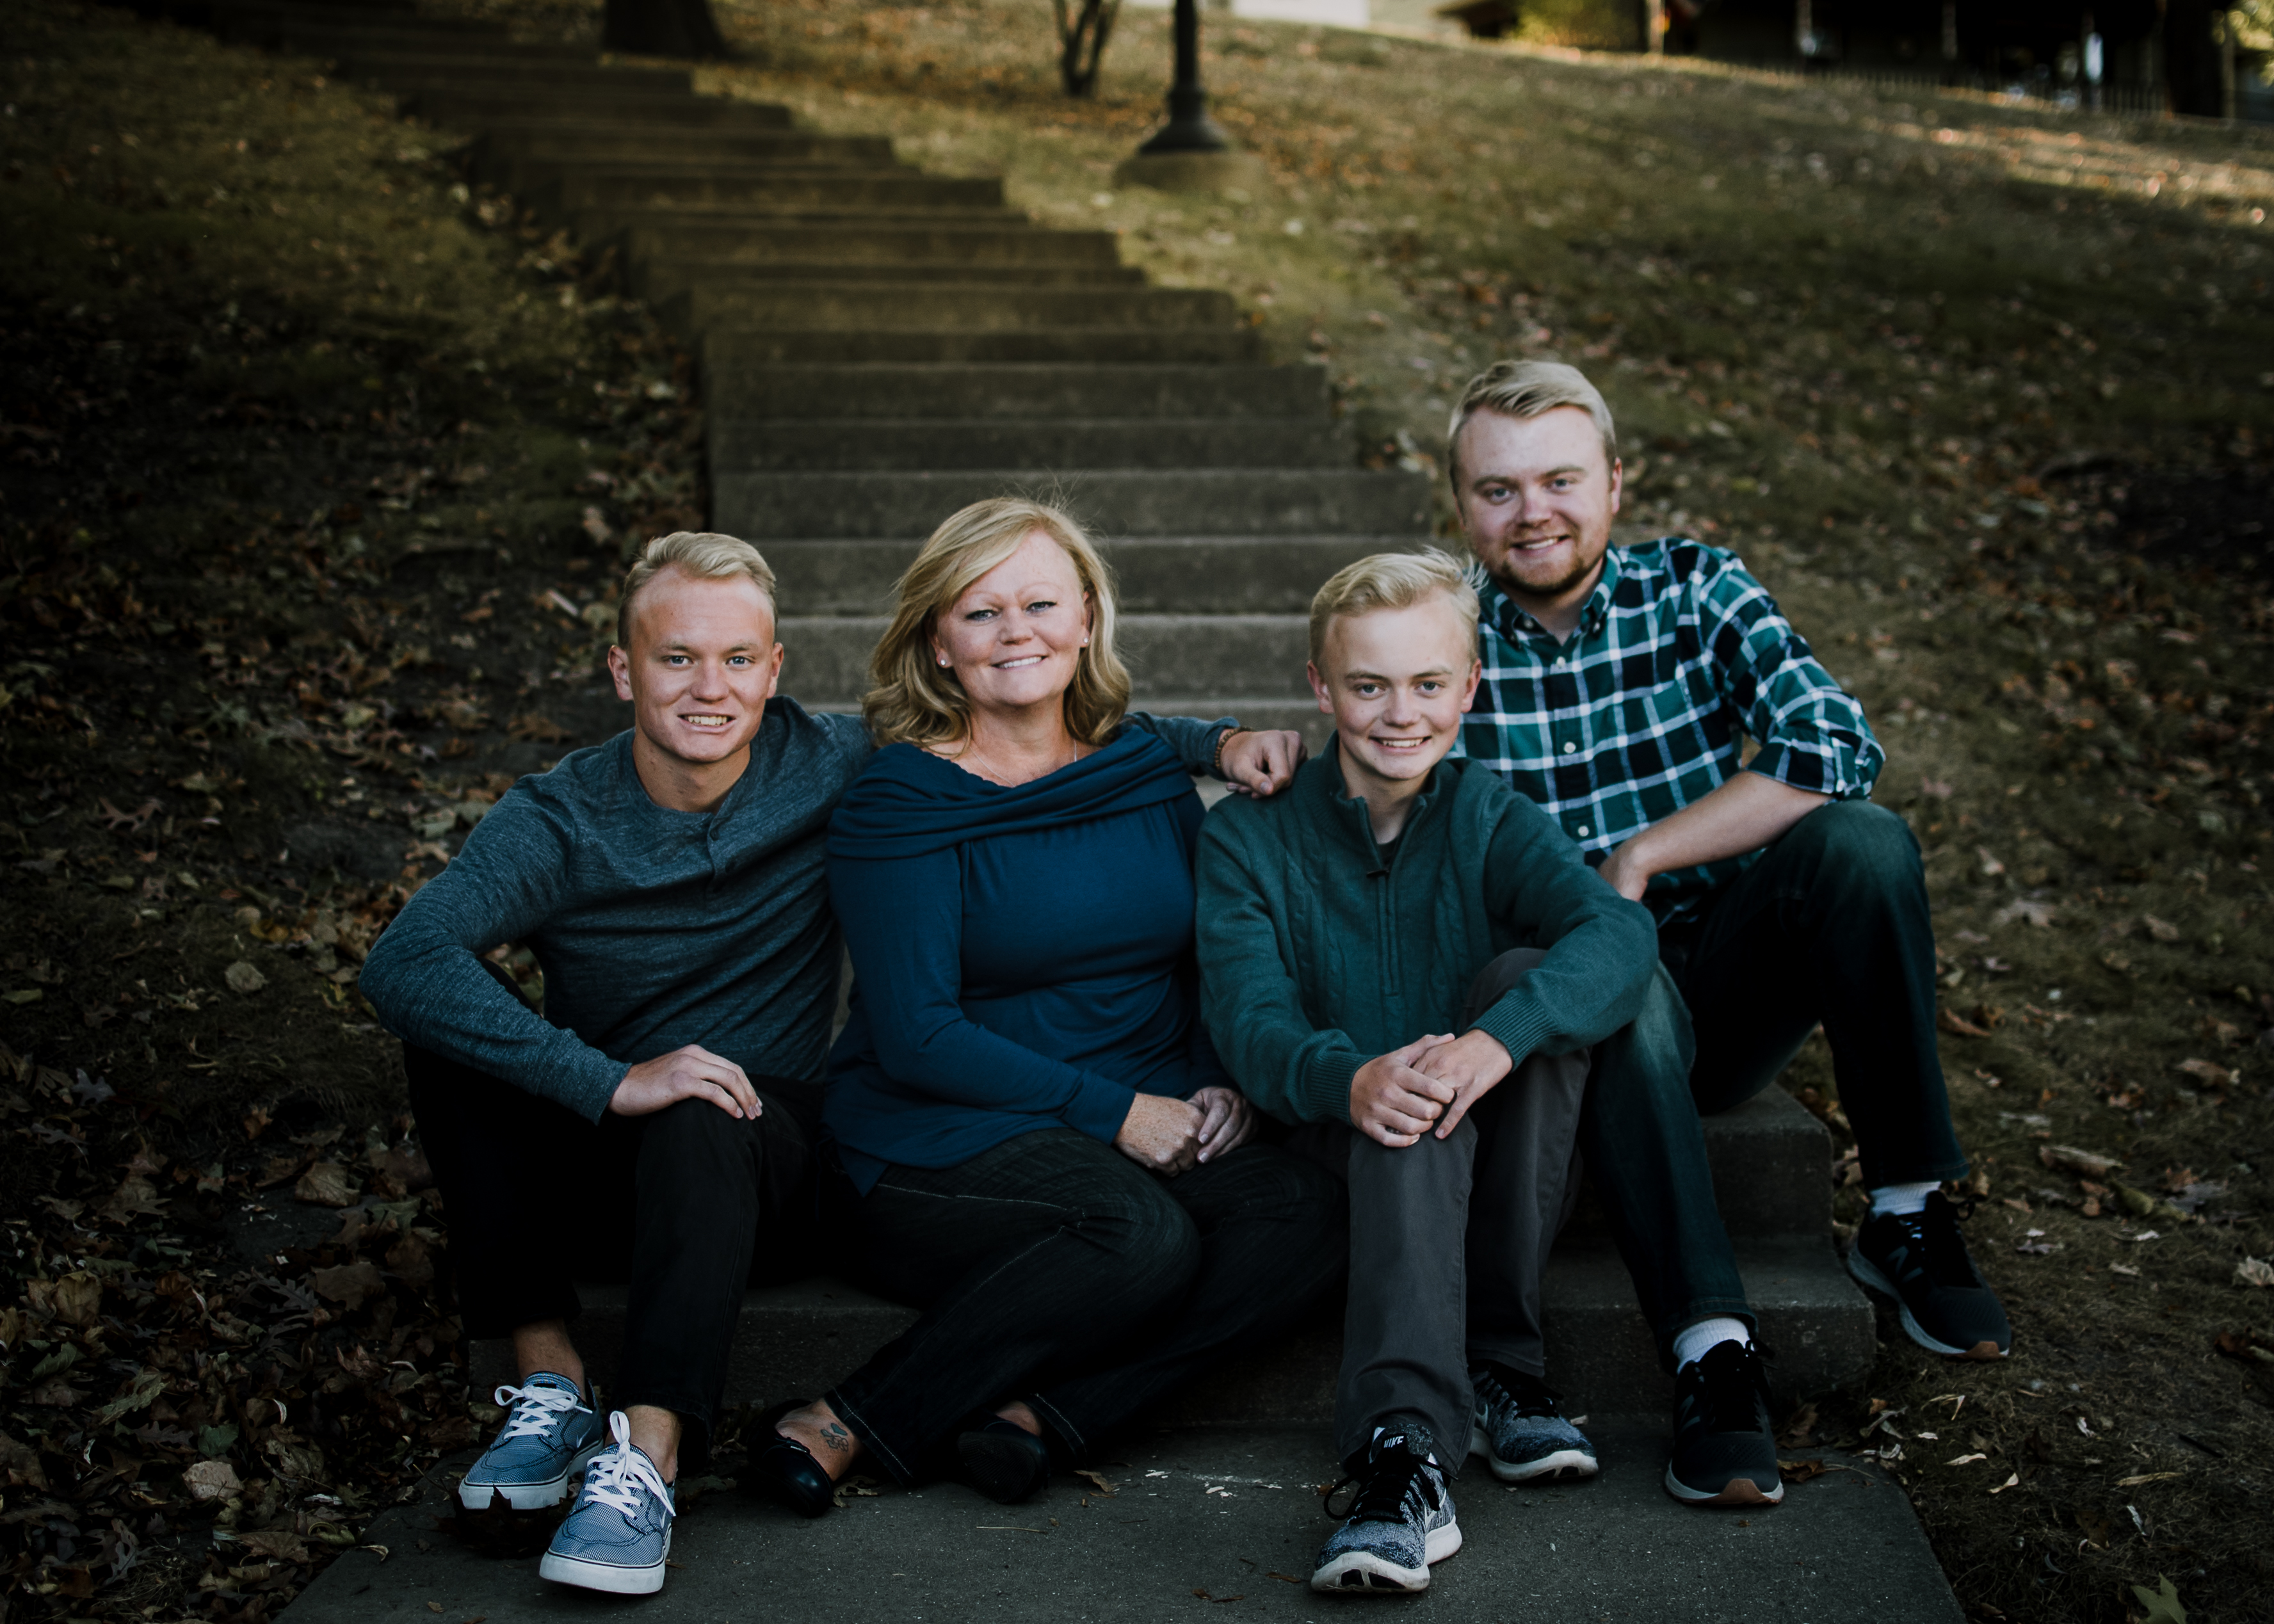 Katie Olson and her family